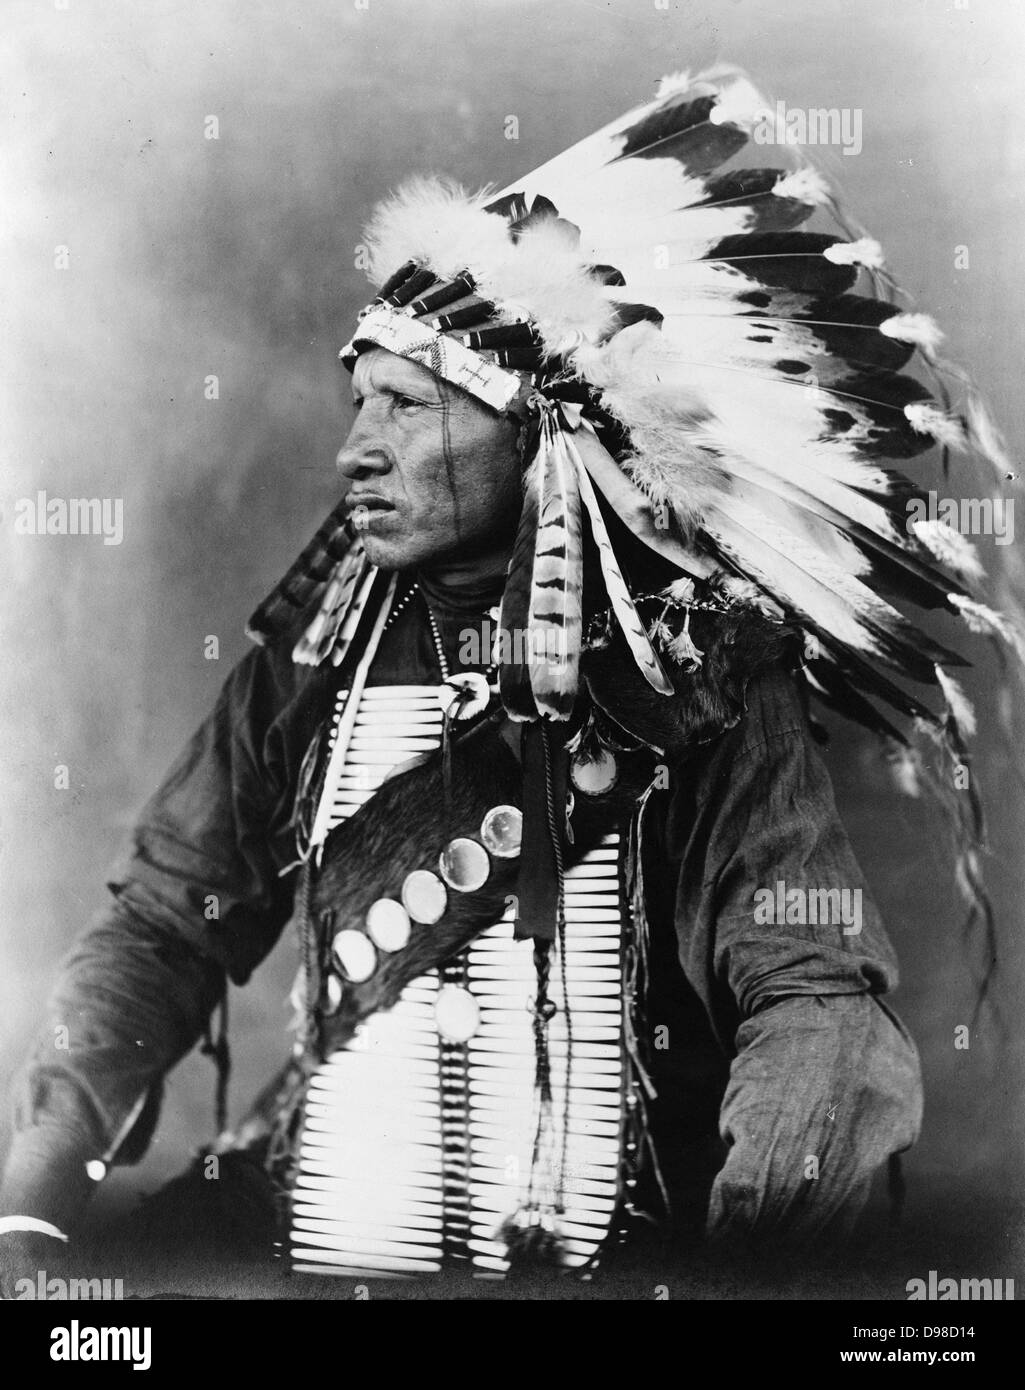 Red Bird, Sioux Indian, half-length portrait, seated, facing left, wearing feathered headdress, c1908. Photograph - Stock Image